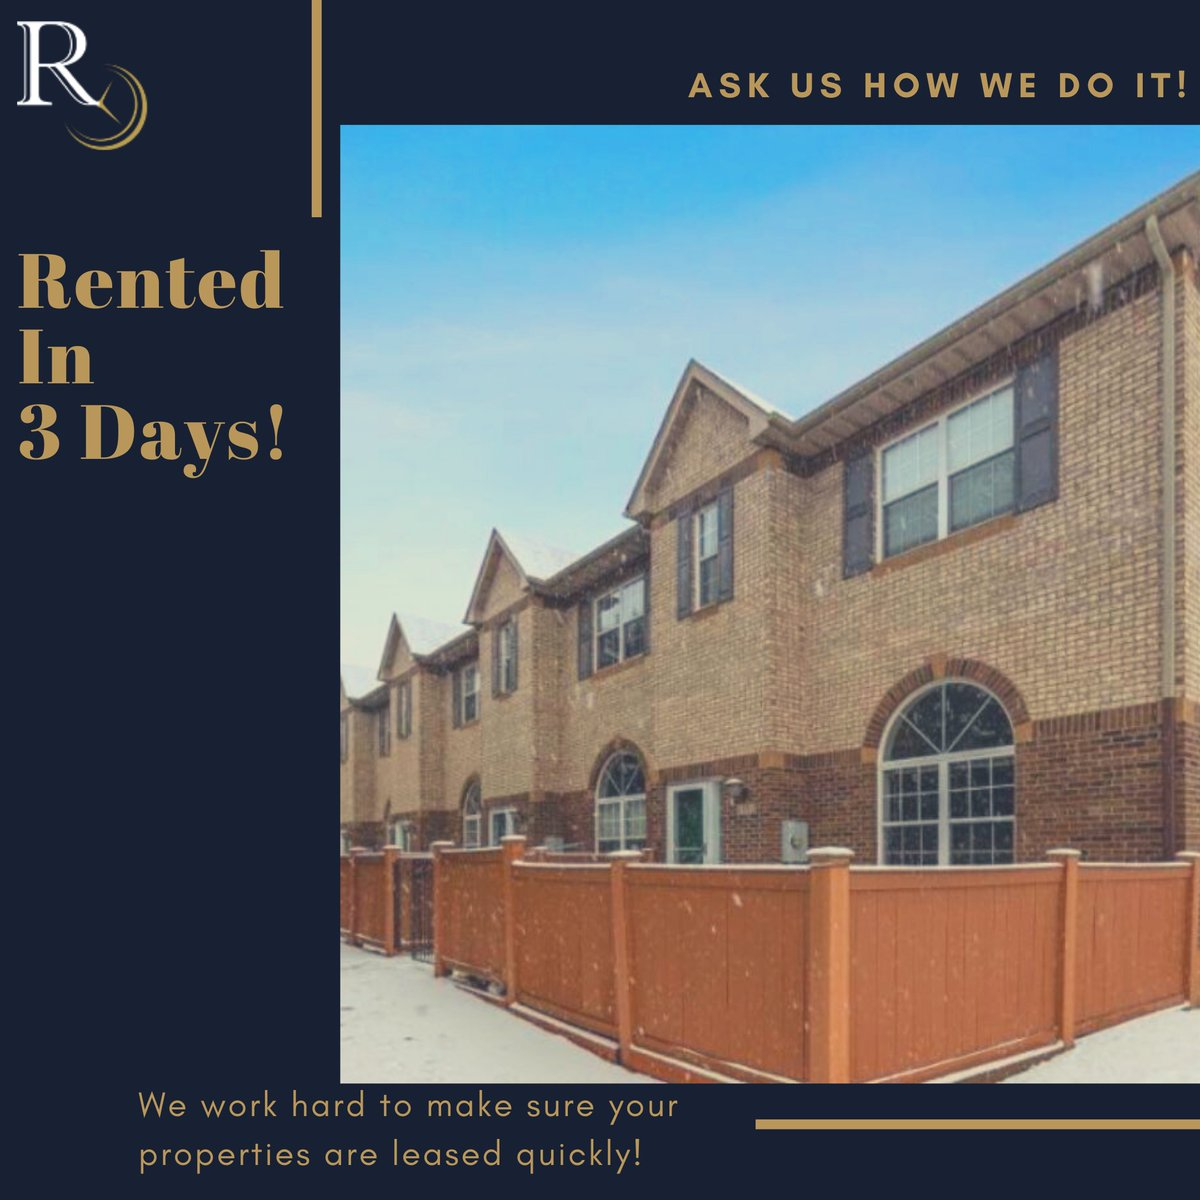 Rented in THREE days!  Yes, our phenomenal team & leasing process did that! Give us a call today to find out more about our property management services.  http://www.minneapolispropertymanagement.com  #PropertyManagement #PropertyManager #MinneapolisPropertyManagement #MinneapolisPropertyManagerpic.twitter.com/xMCIiS0PGh